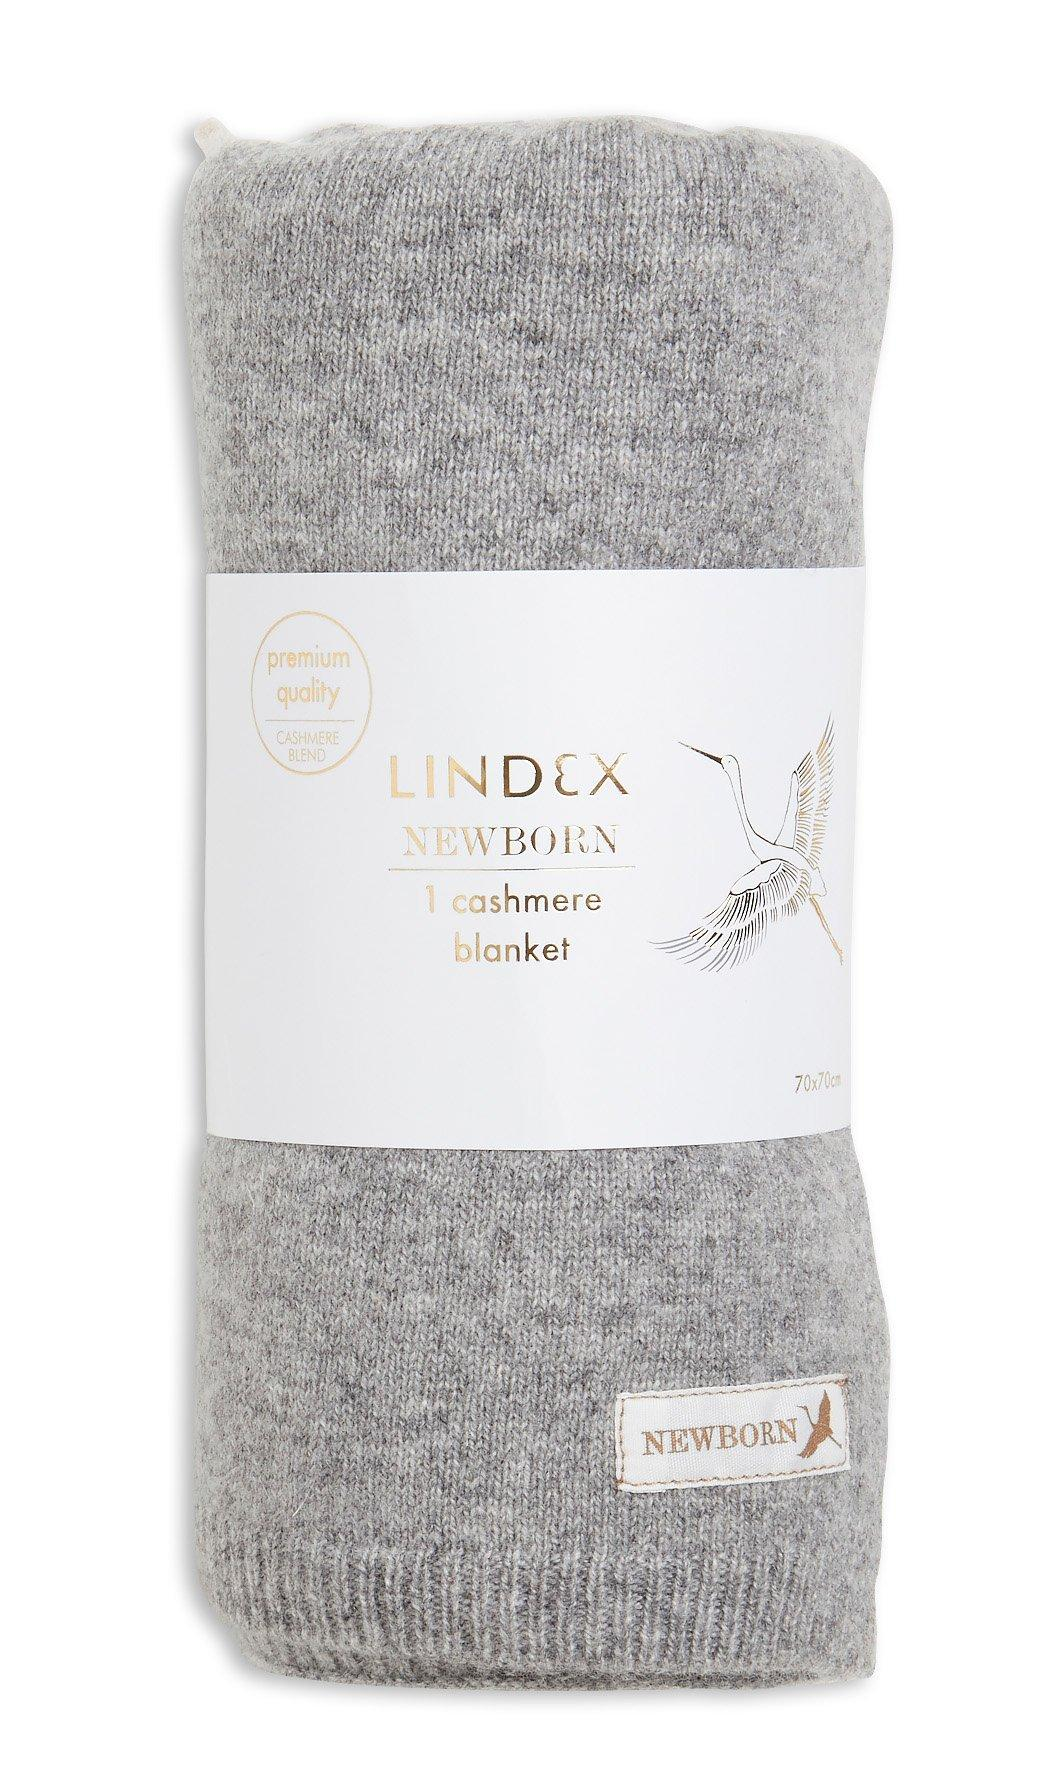 Image of: Baby Blanket In Cashmere Lindex Europe